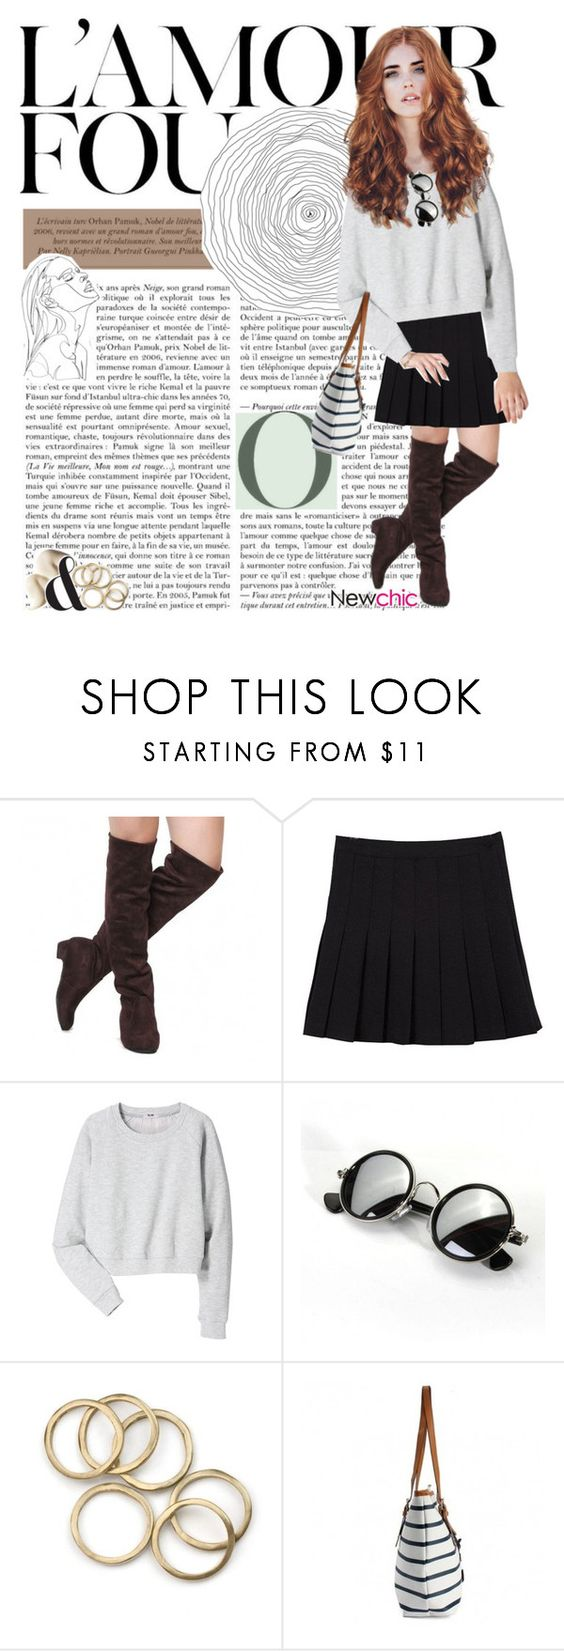 """newchic O2"" by youremyqueen ❤ liked on Polyvore featuring Acne Studios and melsunicorns"